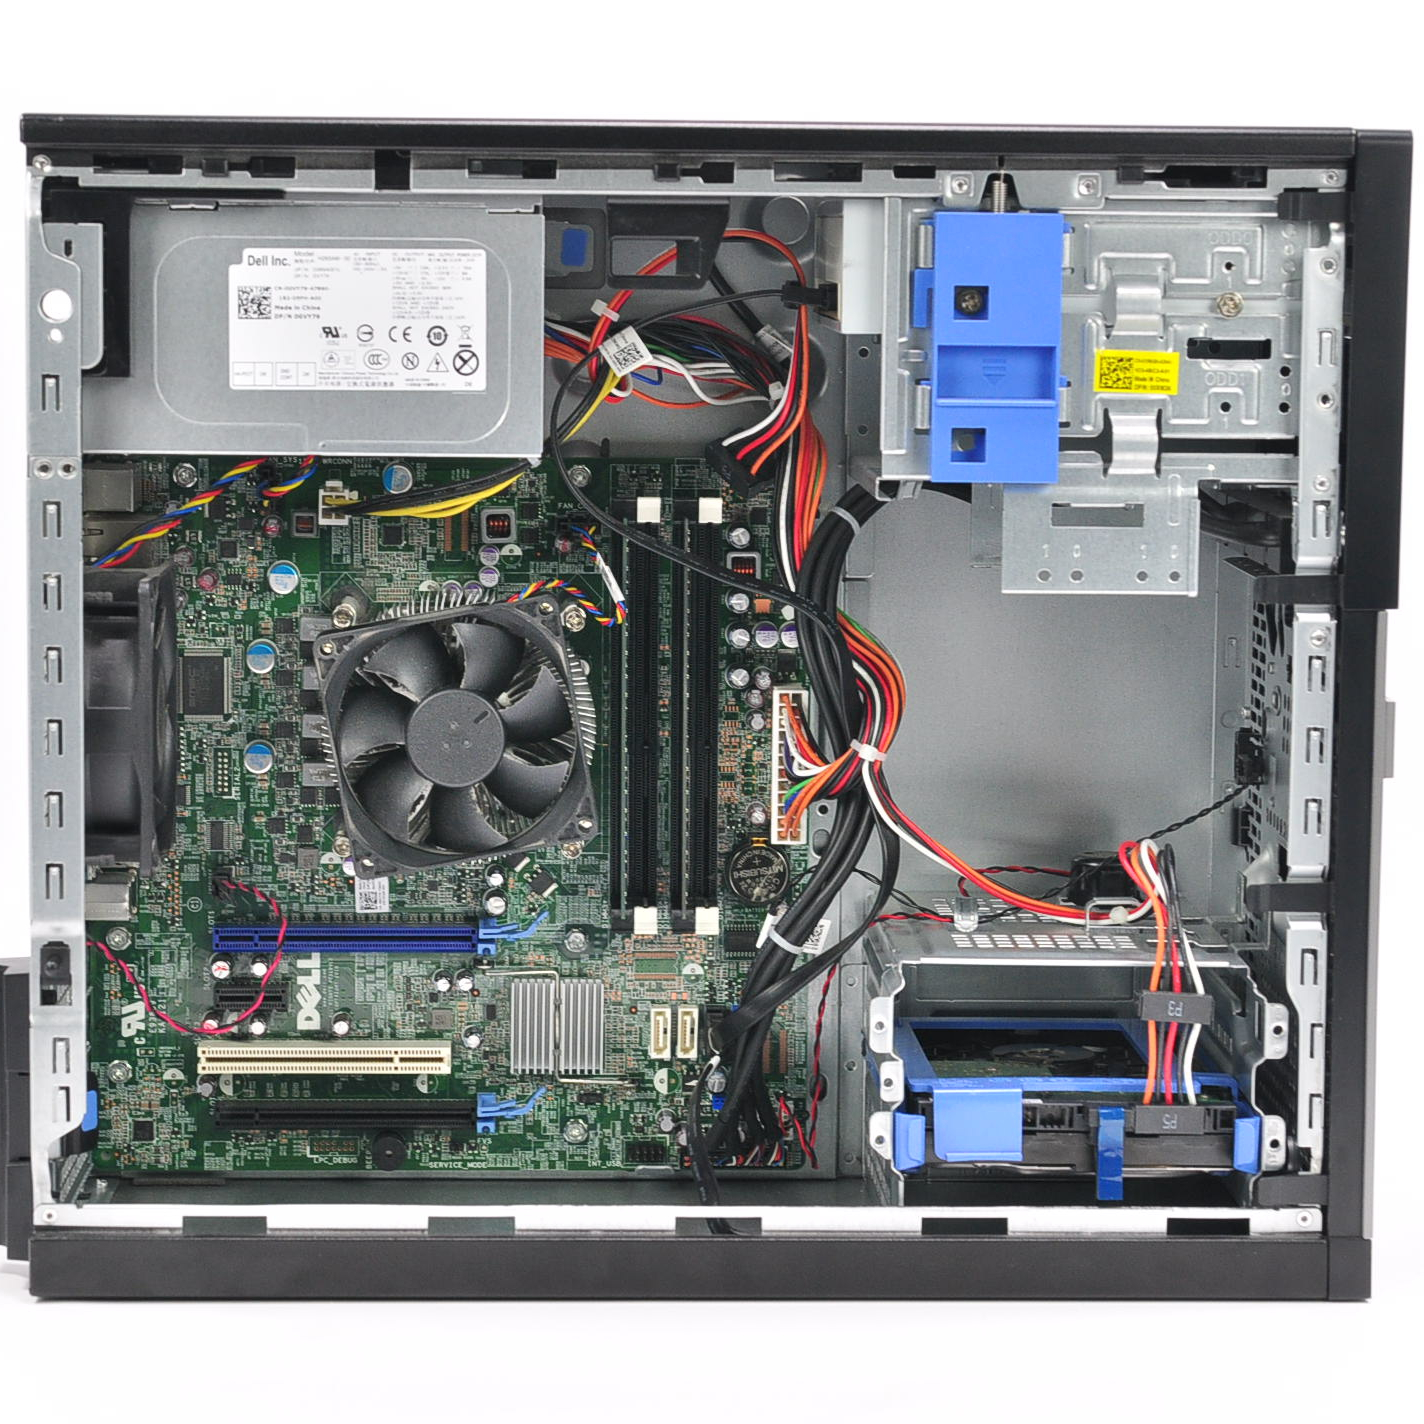 162159067181 in addition 4 Eeva Toitumisblogi as well Dell Optiplex 990 I7quad 4gb 500gb Dvdrw Win7 Pro I6034046879 further Dell New Chromebook 11 Education 2015 together with Project Wasabi Sm7010 Dell Optiplex 7010. on optiplex 790 dt motherboard